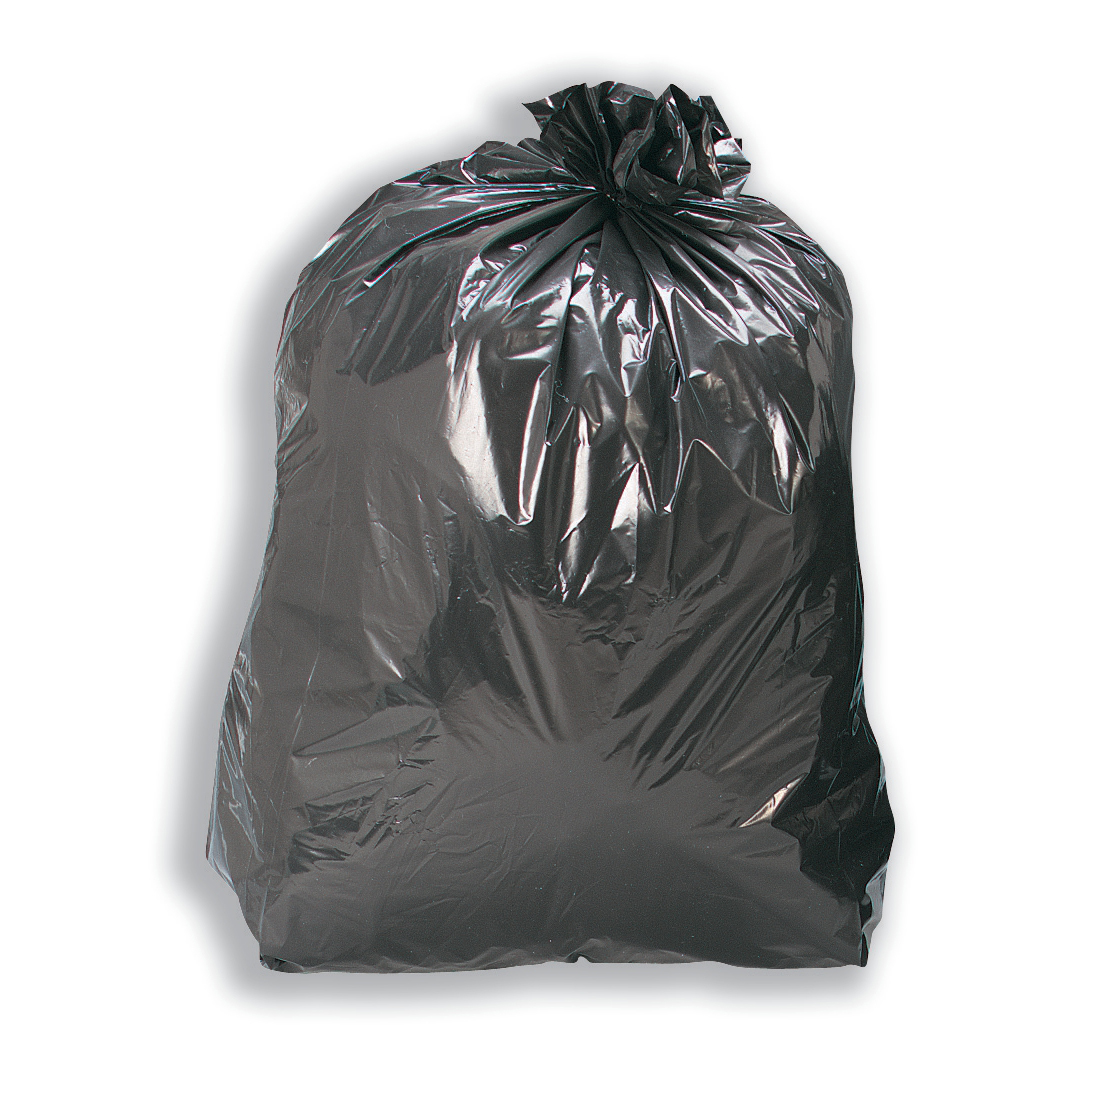 5 Star Facilities Bin Liners Recycled Medium/Heavy Duty 110Ltr Capacity W460/775xH930mm Black [Pack 200]